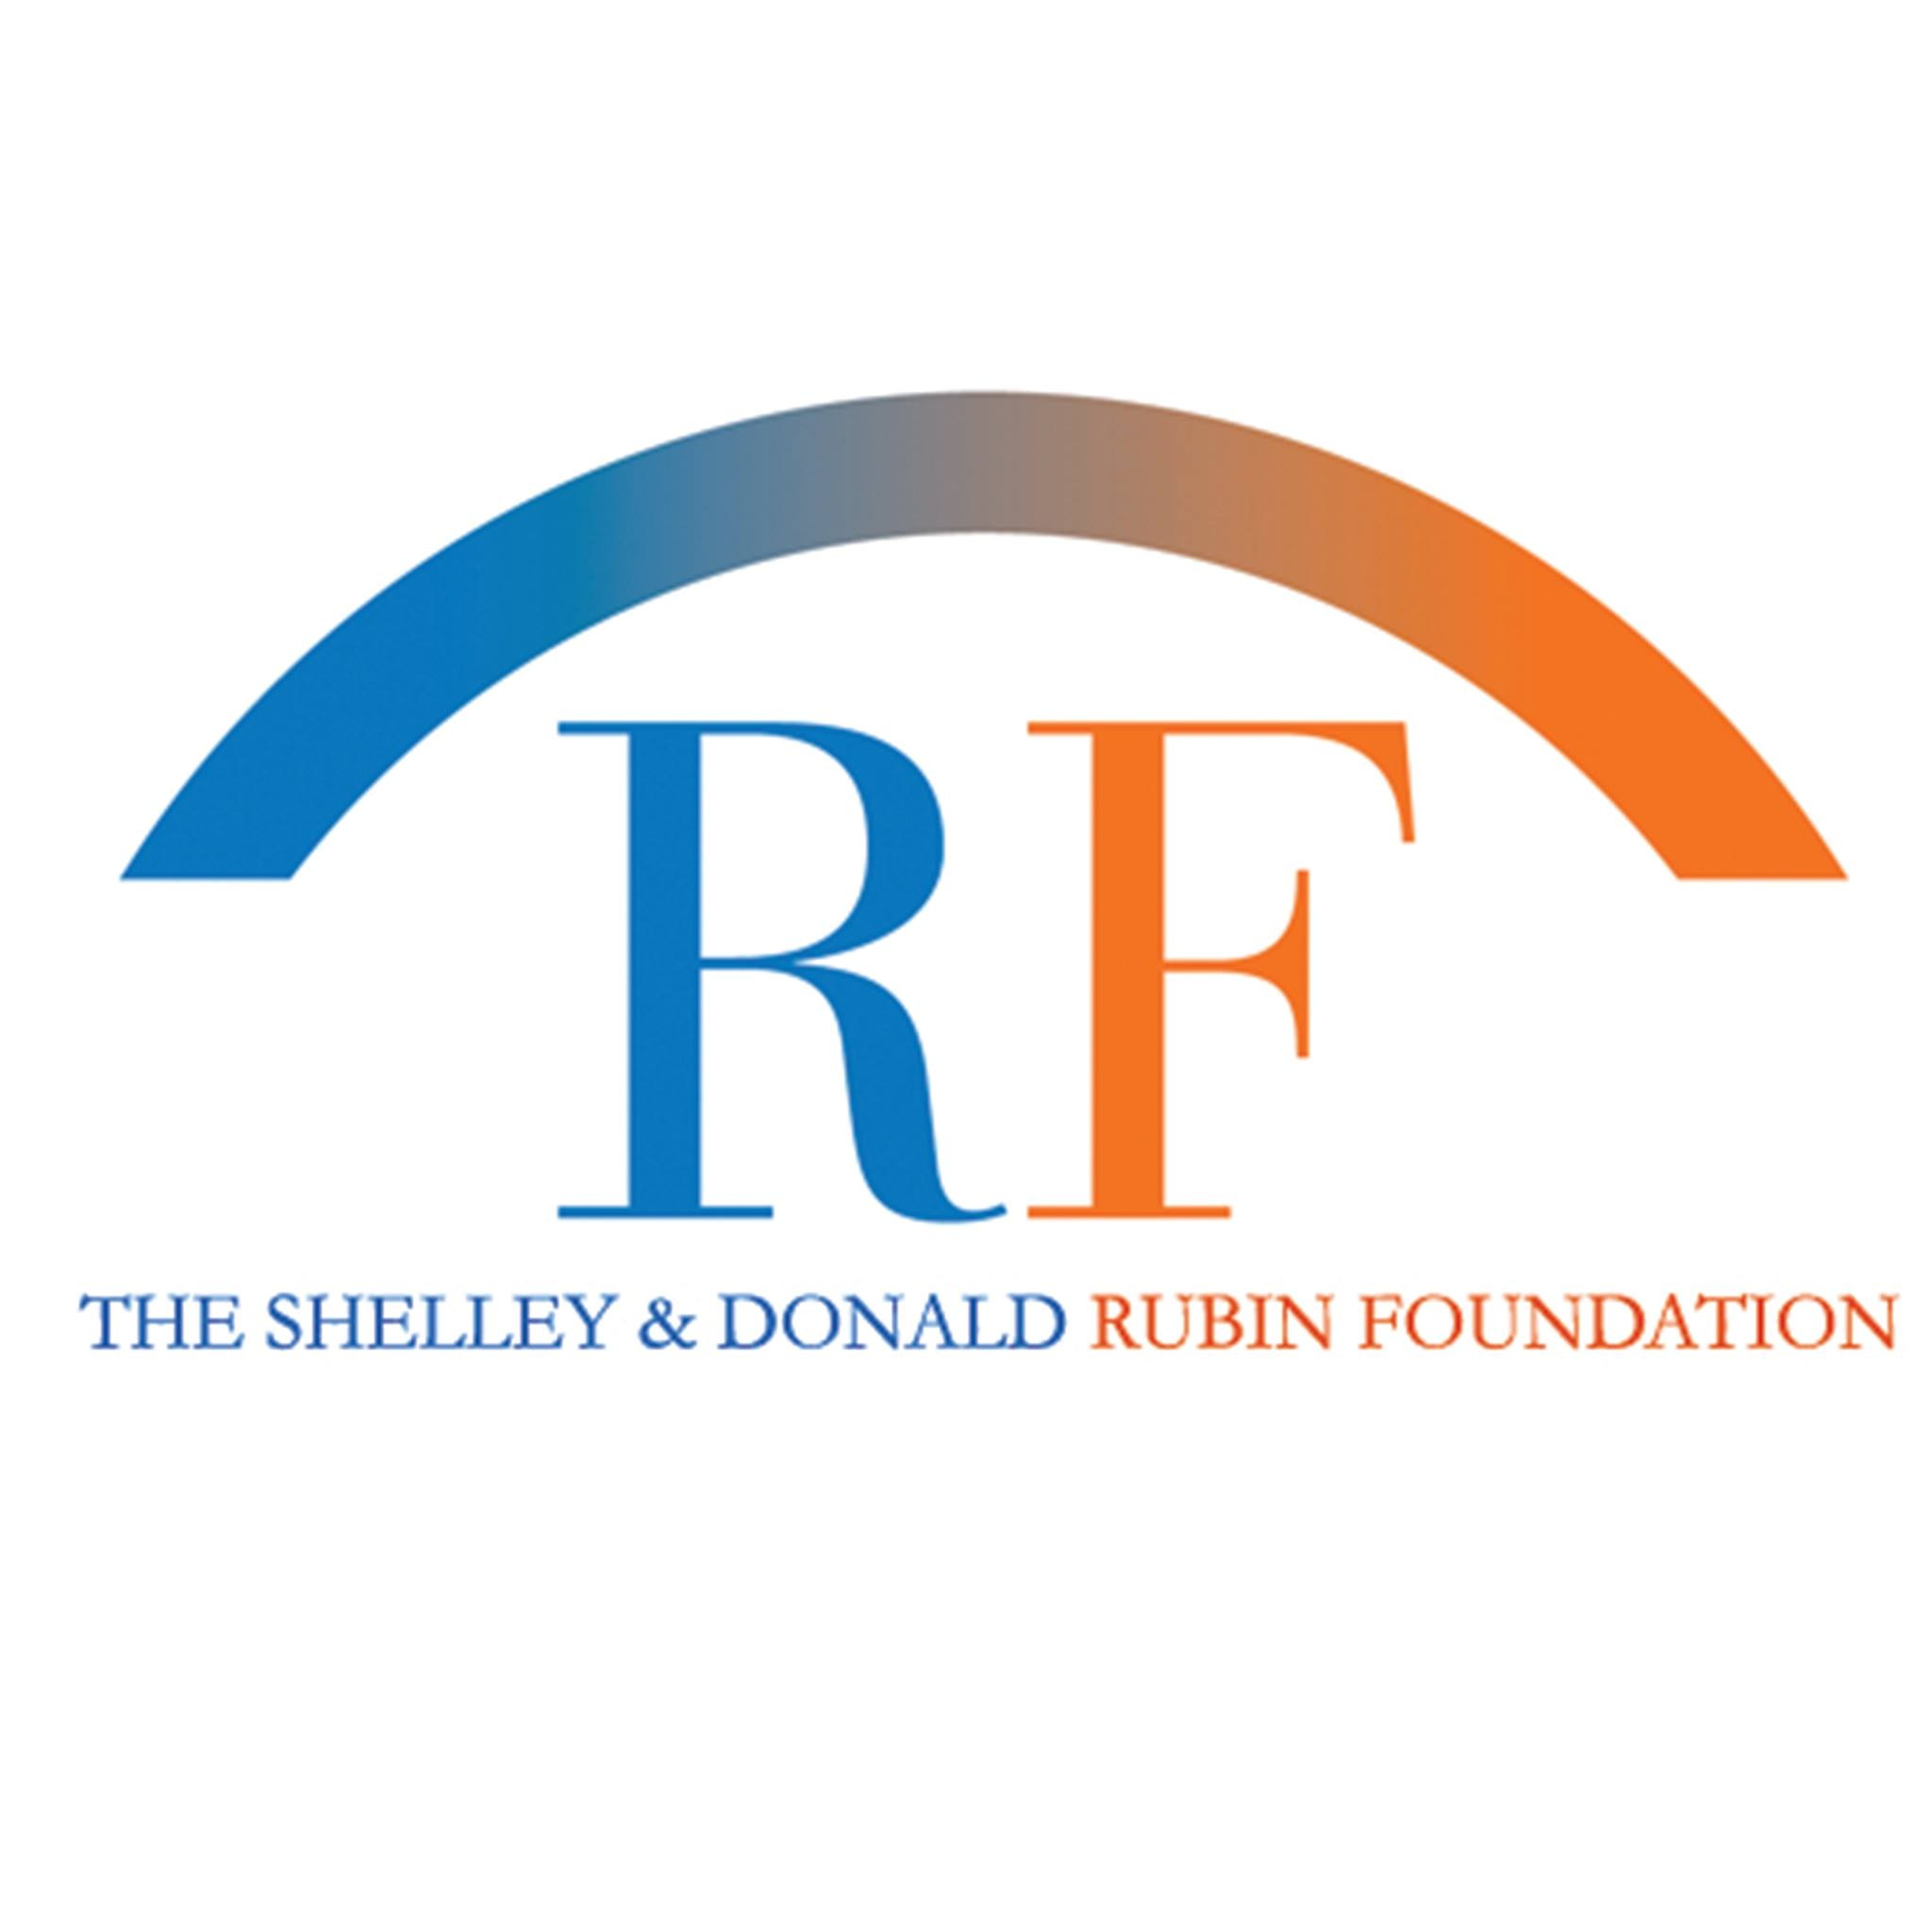 The Shelley and Donald Rubin Foundation